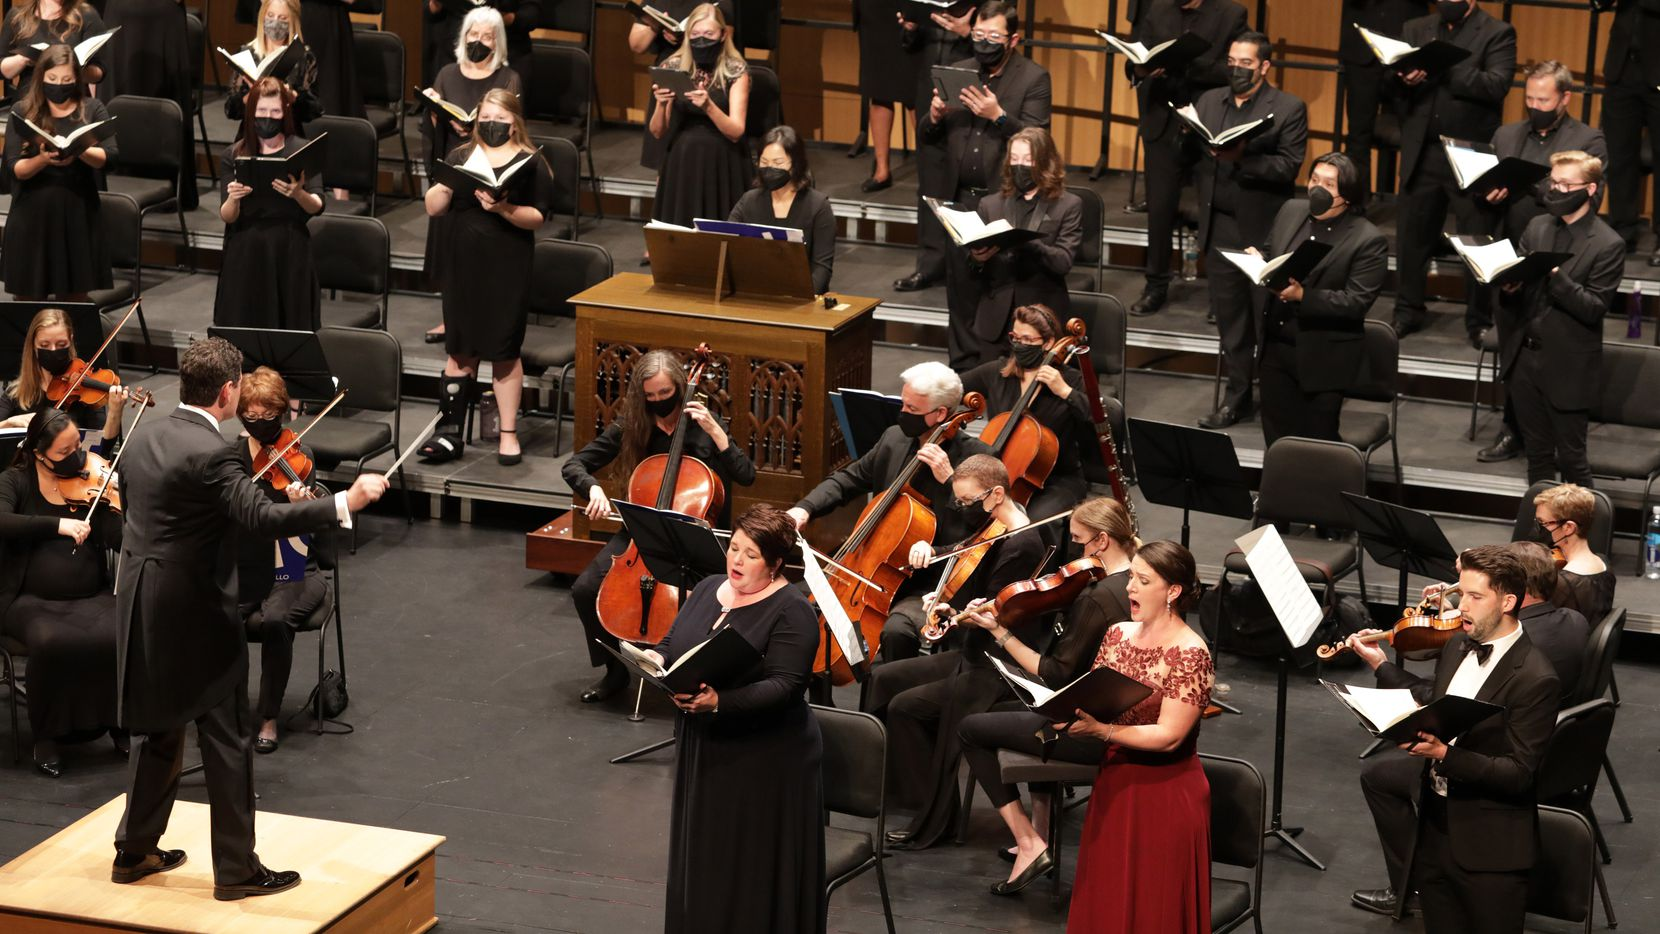 Gregory Hobbs conducts the Highland Park Chorale and Orchestra, with (from left) soprano Julie Liston Johnson, alto Claire Shackleton and tenor Barrett Radziun, at Moody Performance Hall in Dallas on Sept. 11, 2021.